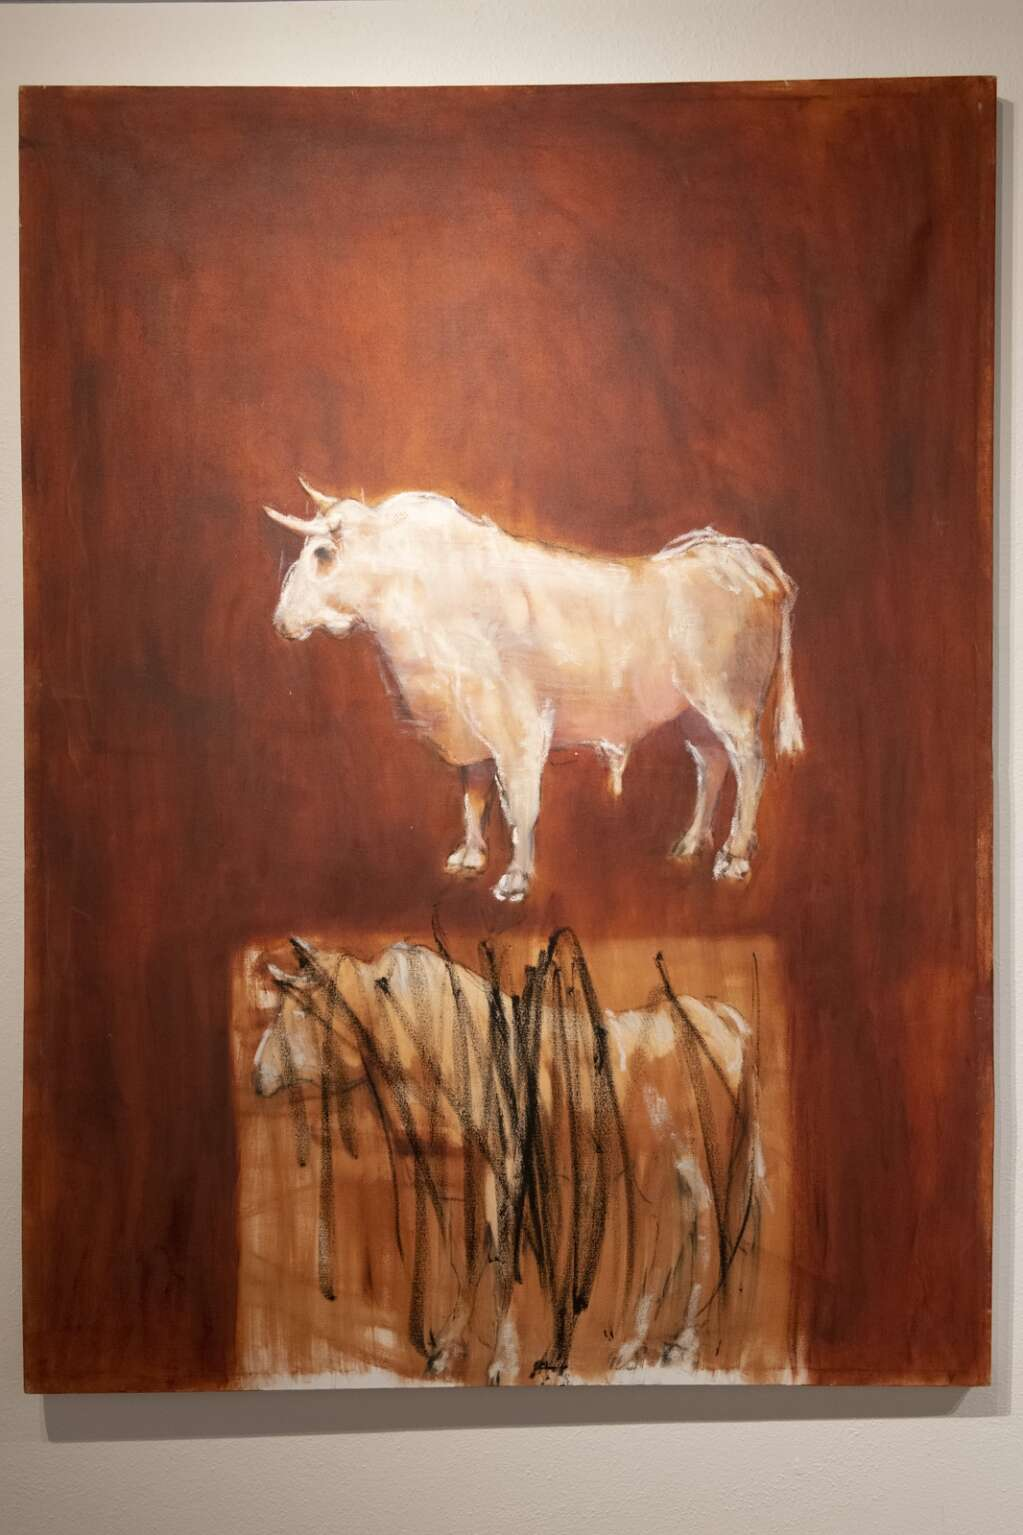 An exhibition featuring work by  Annie Decamp and Michael Dowling at the Red Brick Center for the Arts in Aspen on Tuesday, March 2, 2021. (Kelsey Brunner/The Aspen Times)